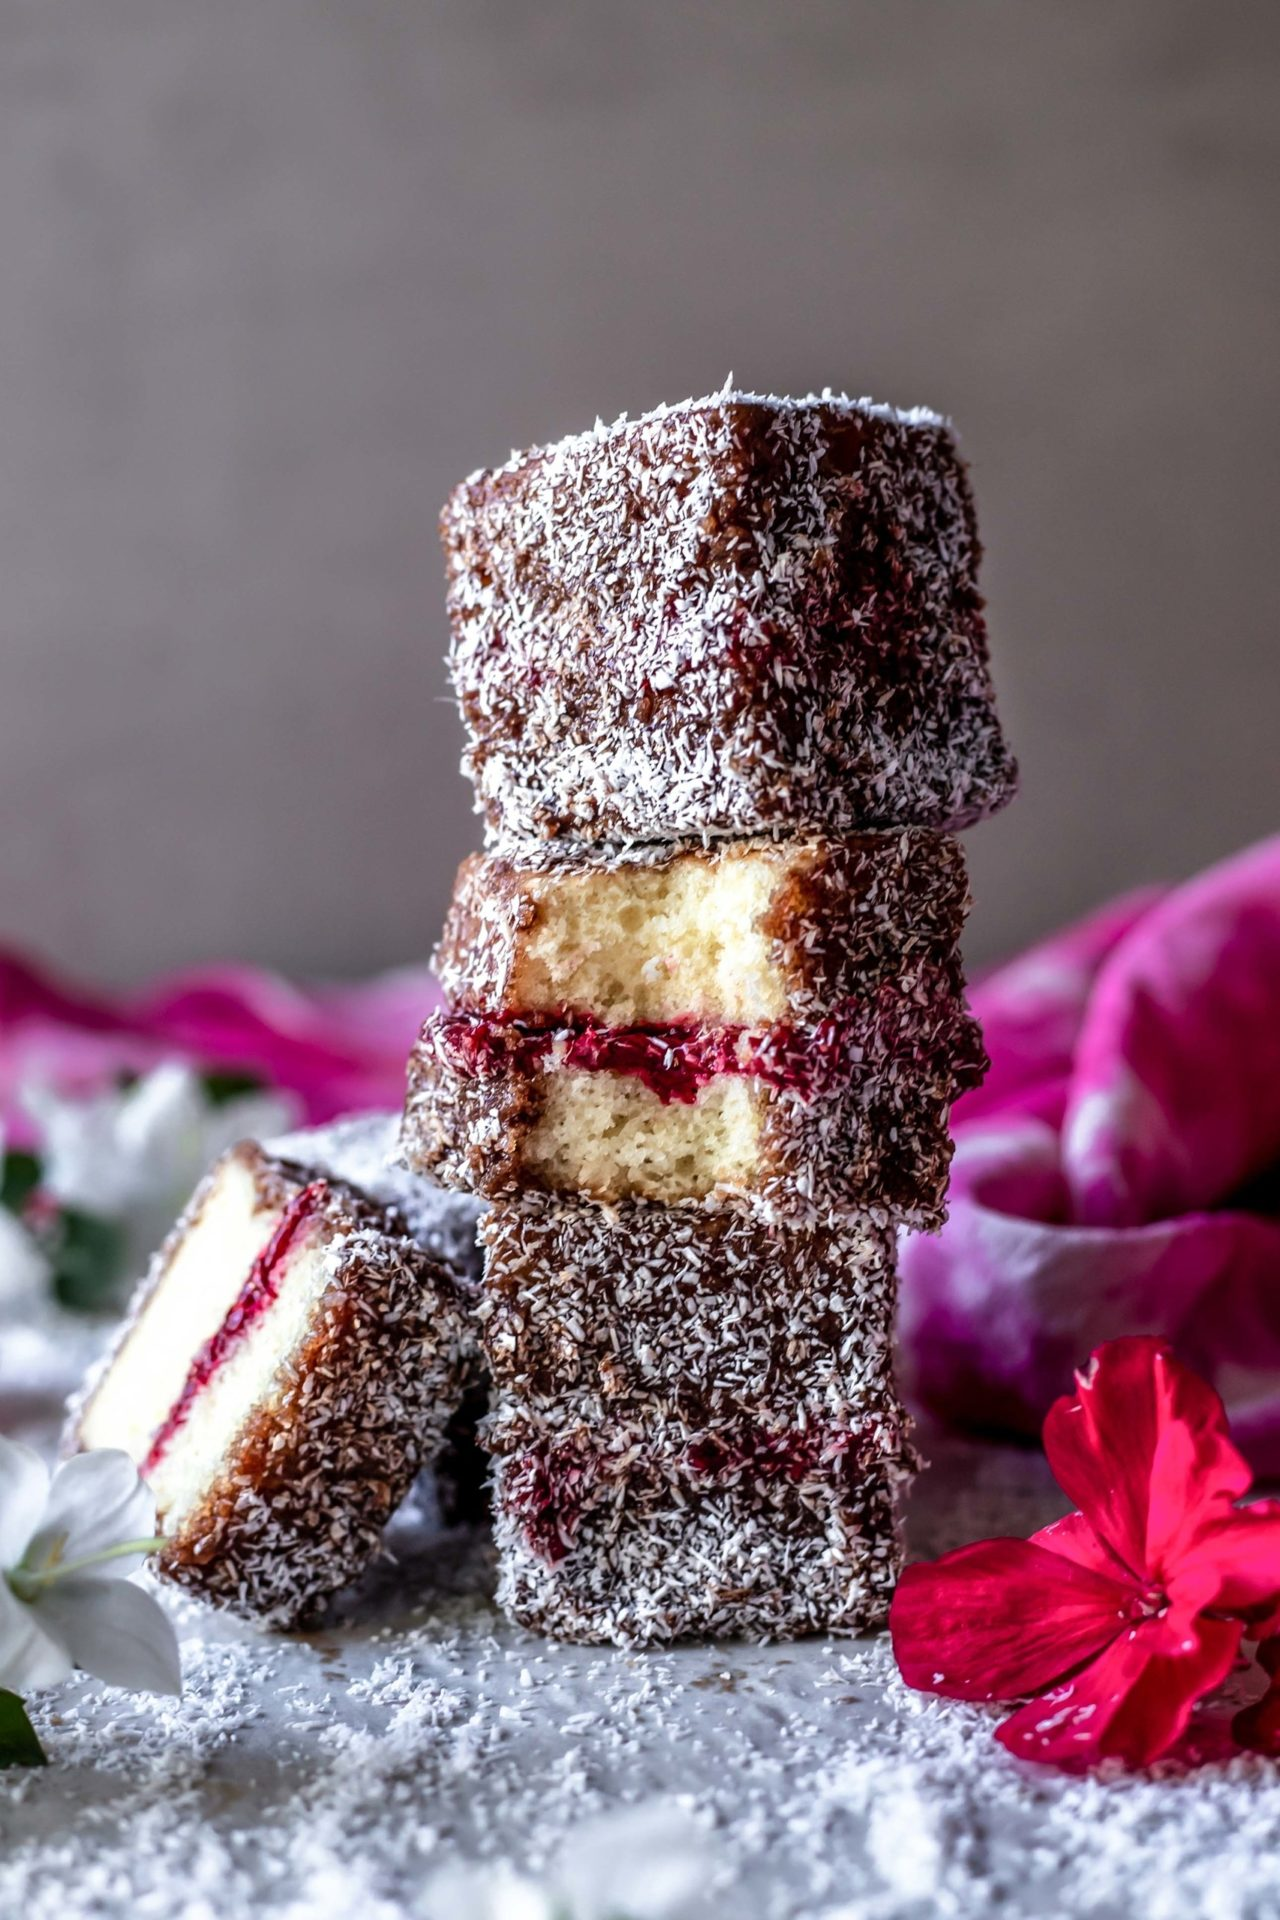 These Gluten-Free Lamingtons are spongy, soft, buttery, jam-infused, flavorful, perfectly sweetened and so delicious!